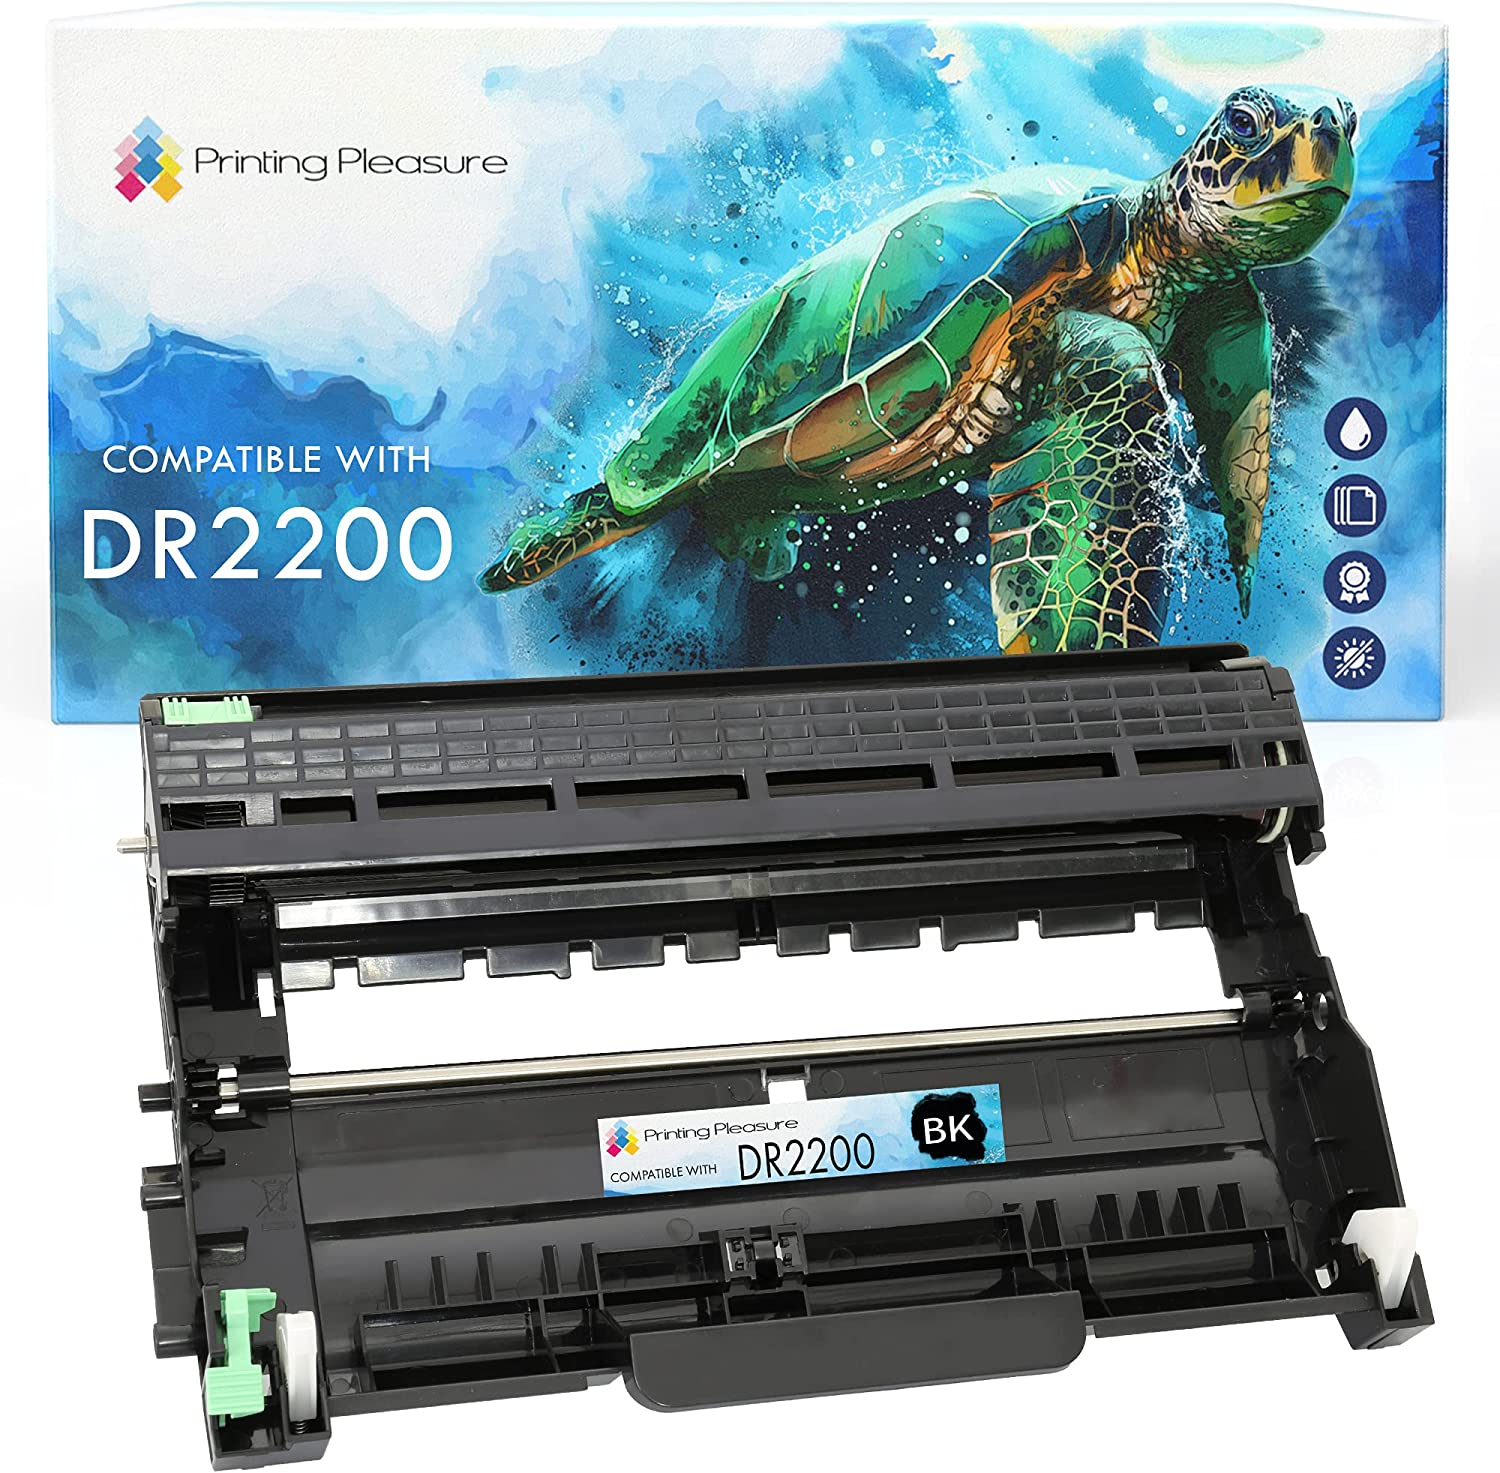 Printing Pleasure DR2200 Drum Unit compatible with Brother DCP-7055 DCP-7060D DCP-7065DN HL-2130 HL-2132 HL-2135W HL-2240 HL-2240D HL-2250DN HL-2270DW MFC-7360N MFC-7860DW FAX-2840 - Black, High Yield